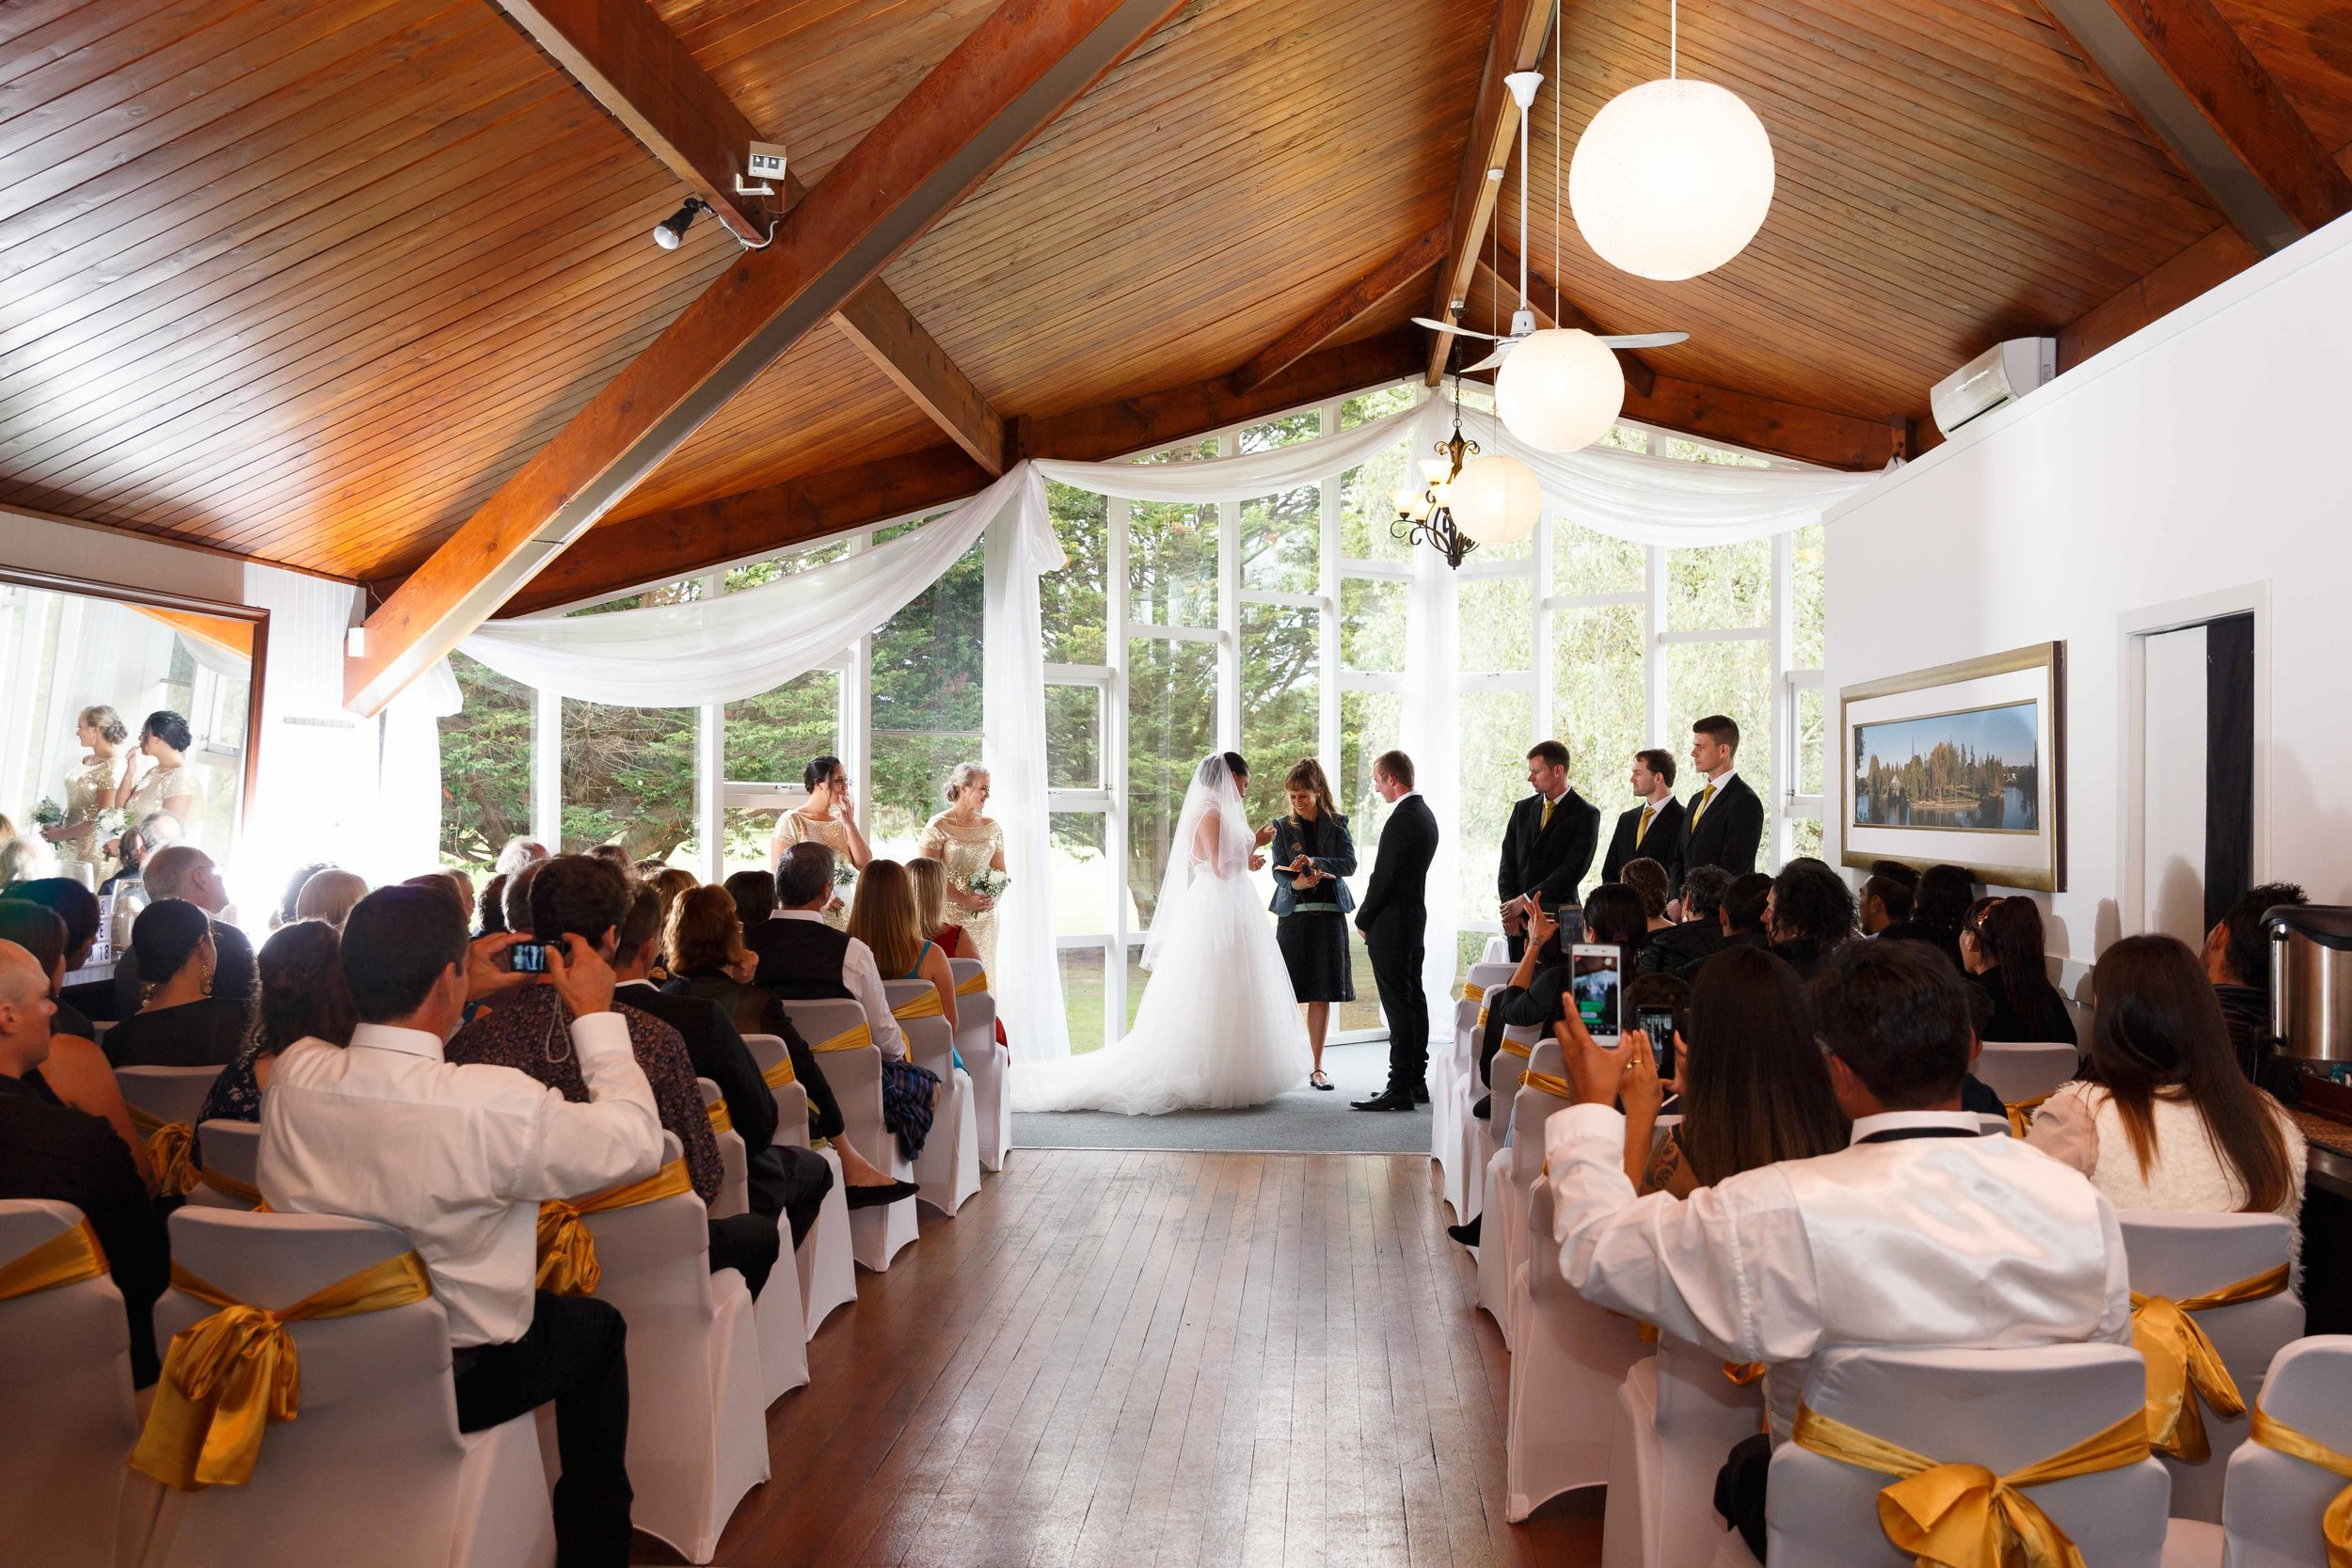 Highight-wedding-photography-the-chalet-palmerston-north-new-zealand-37.jpg